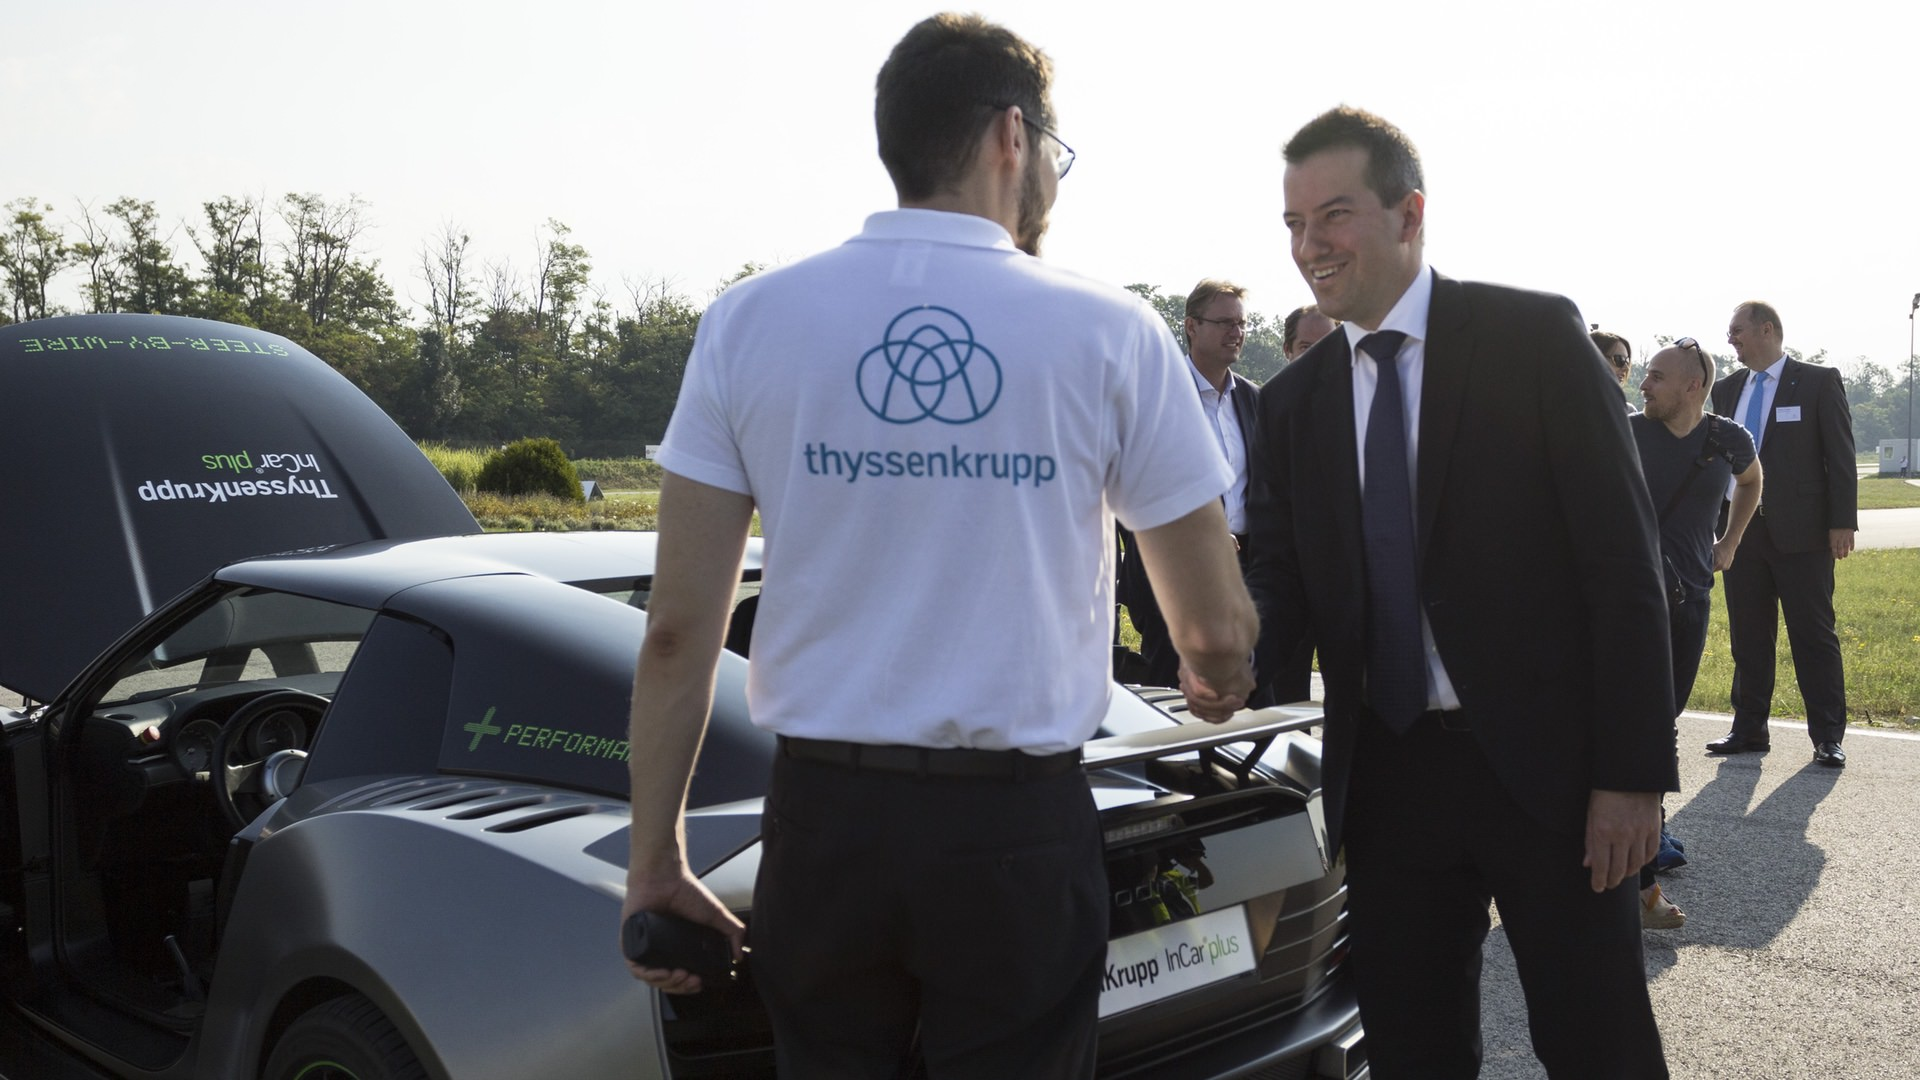 Self-driving car developed in Hungary has been presented by thyssenkrupp